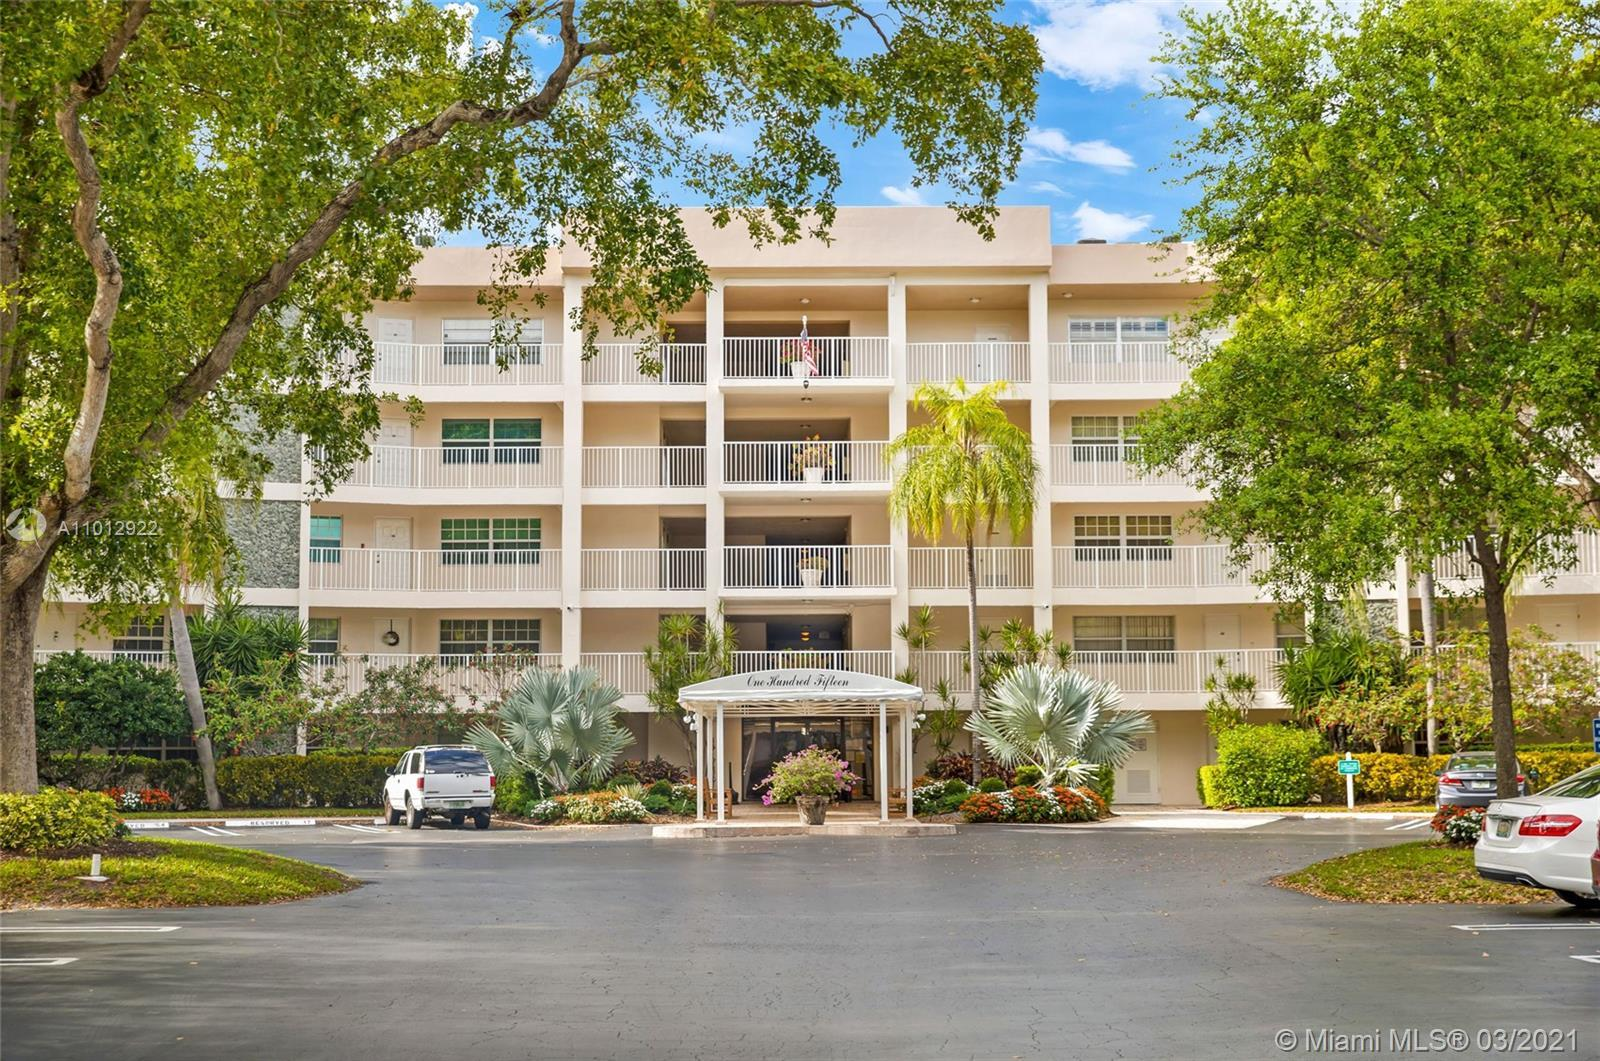 EXCELLENT PRICE FOR F MODEL 3 BEDROOMS 2 1/2 BATHS. BALCONY HAS ELECTRIC SHUTTERS. NEW SS APPLIANCES